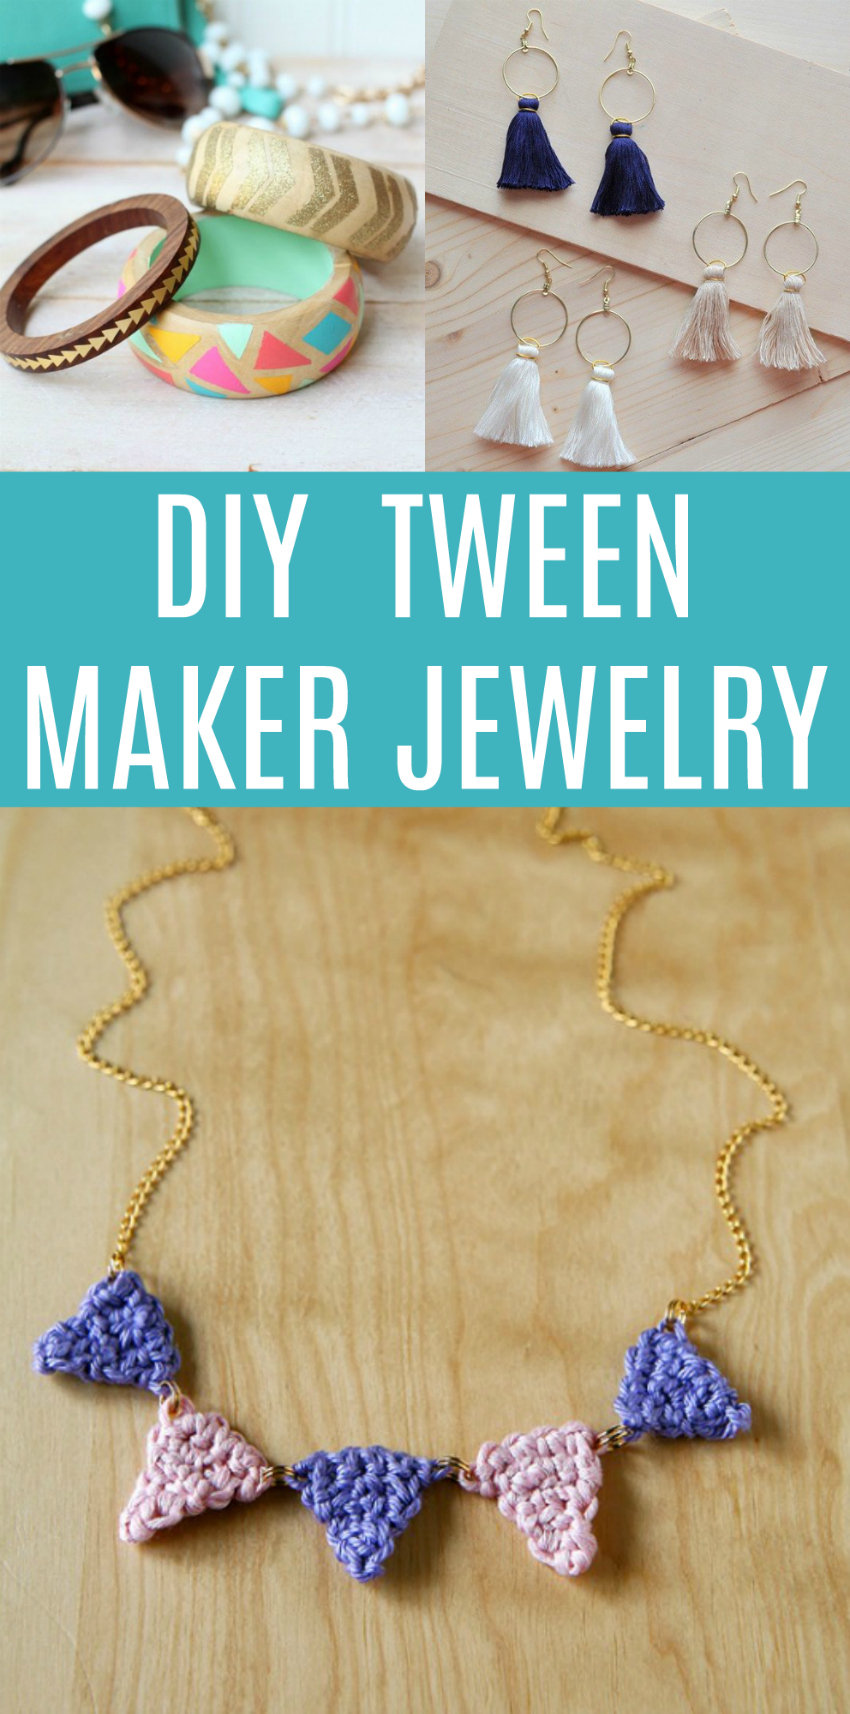 9 NOW Ideas: DIY Tween Maker Jewelry | Make and Takes